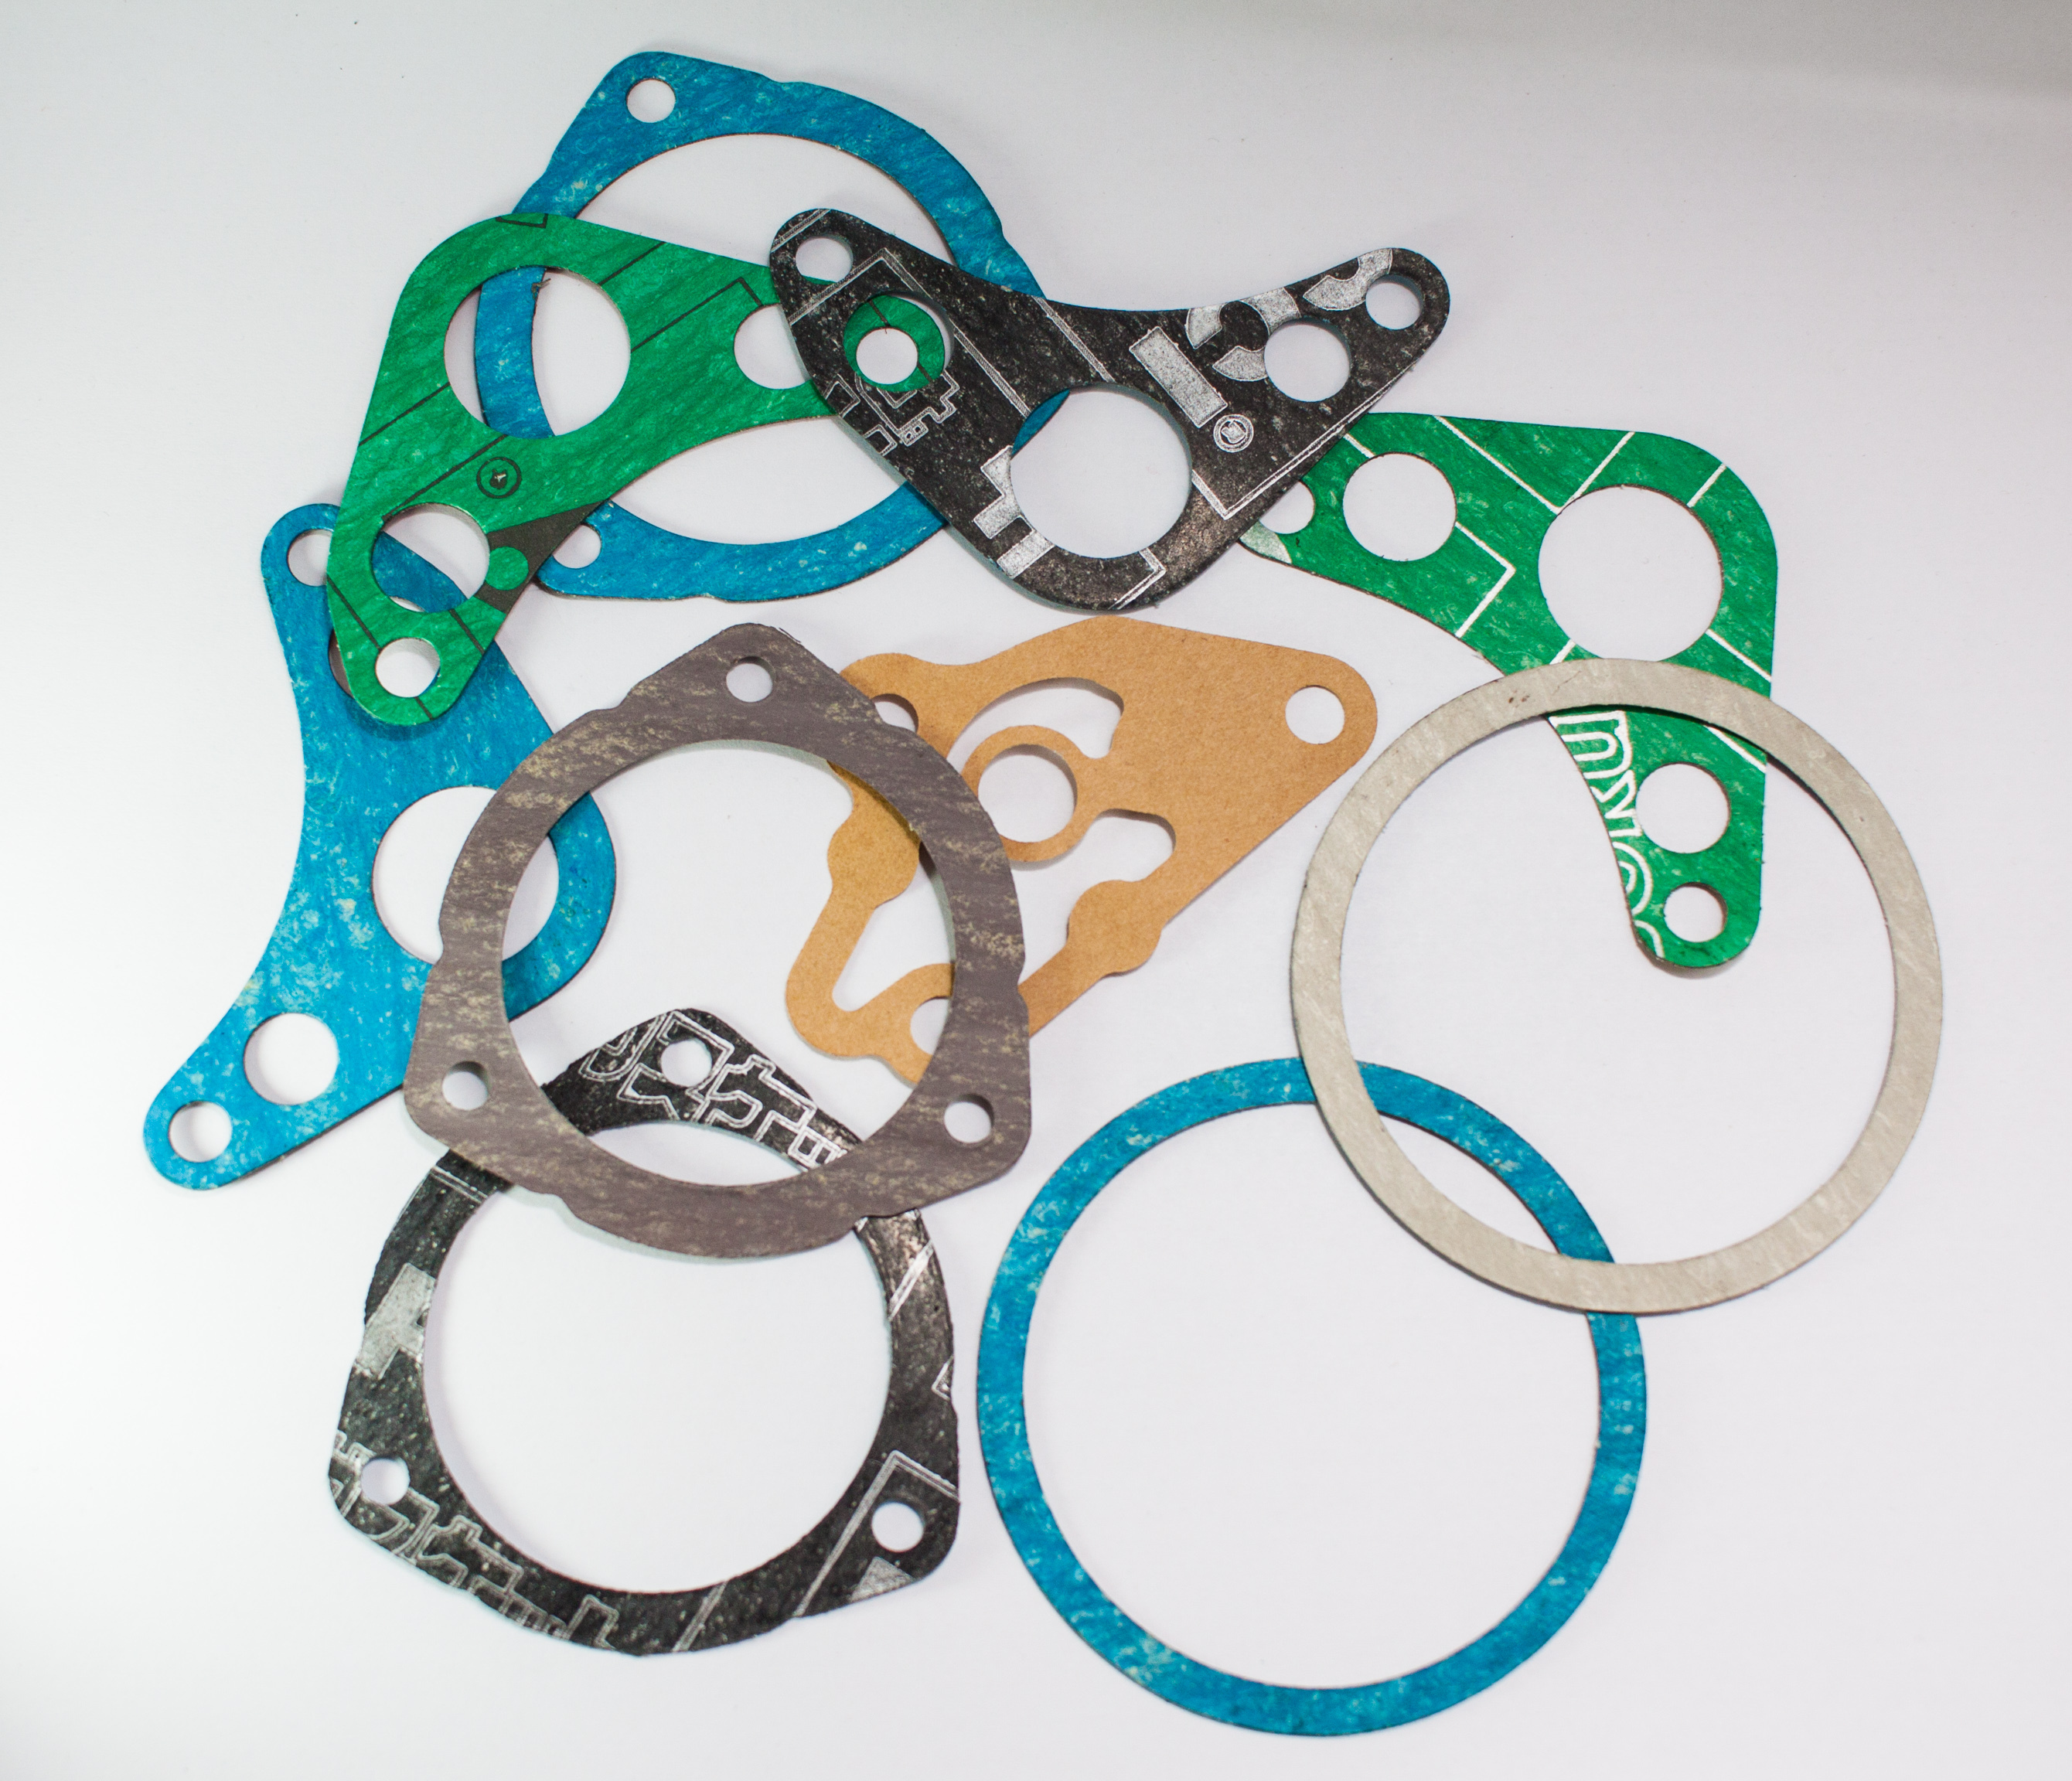 Part of motorcycle gaskets